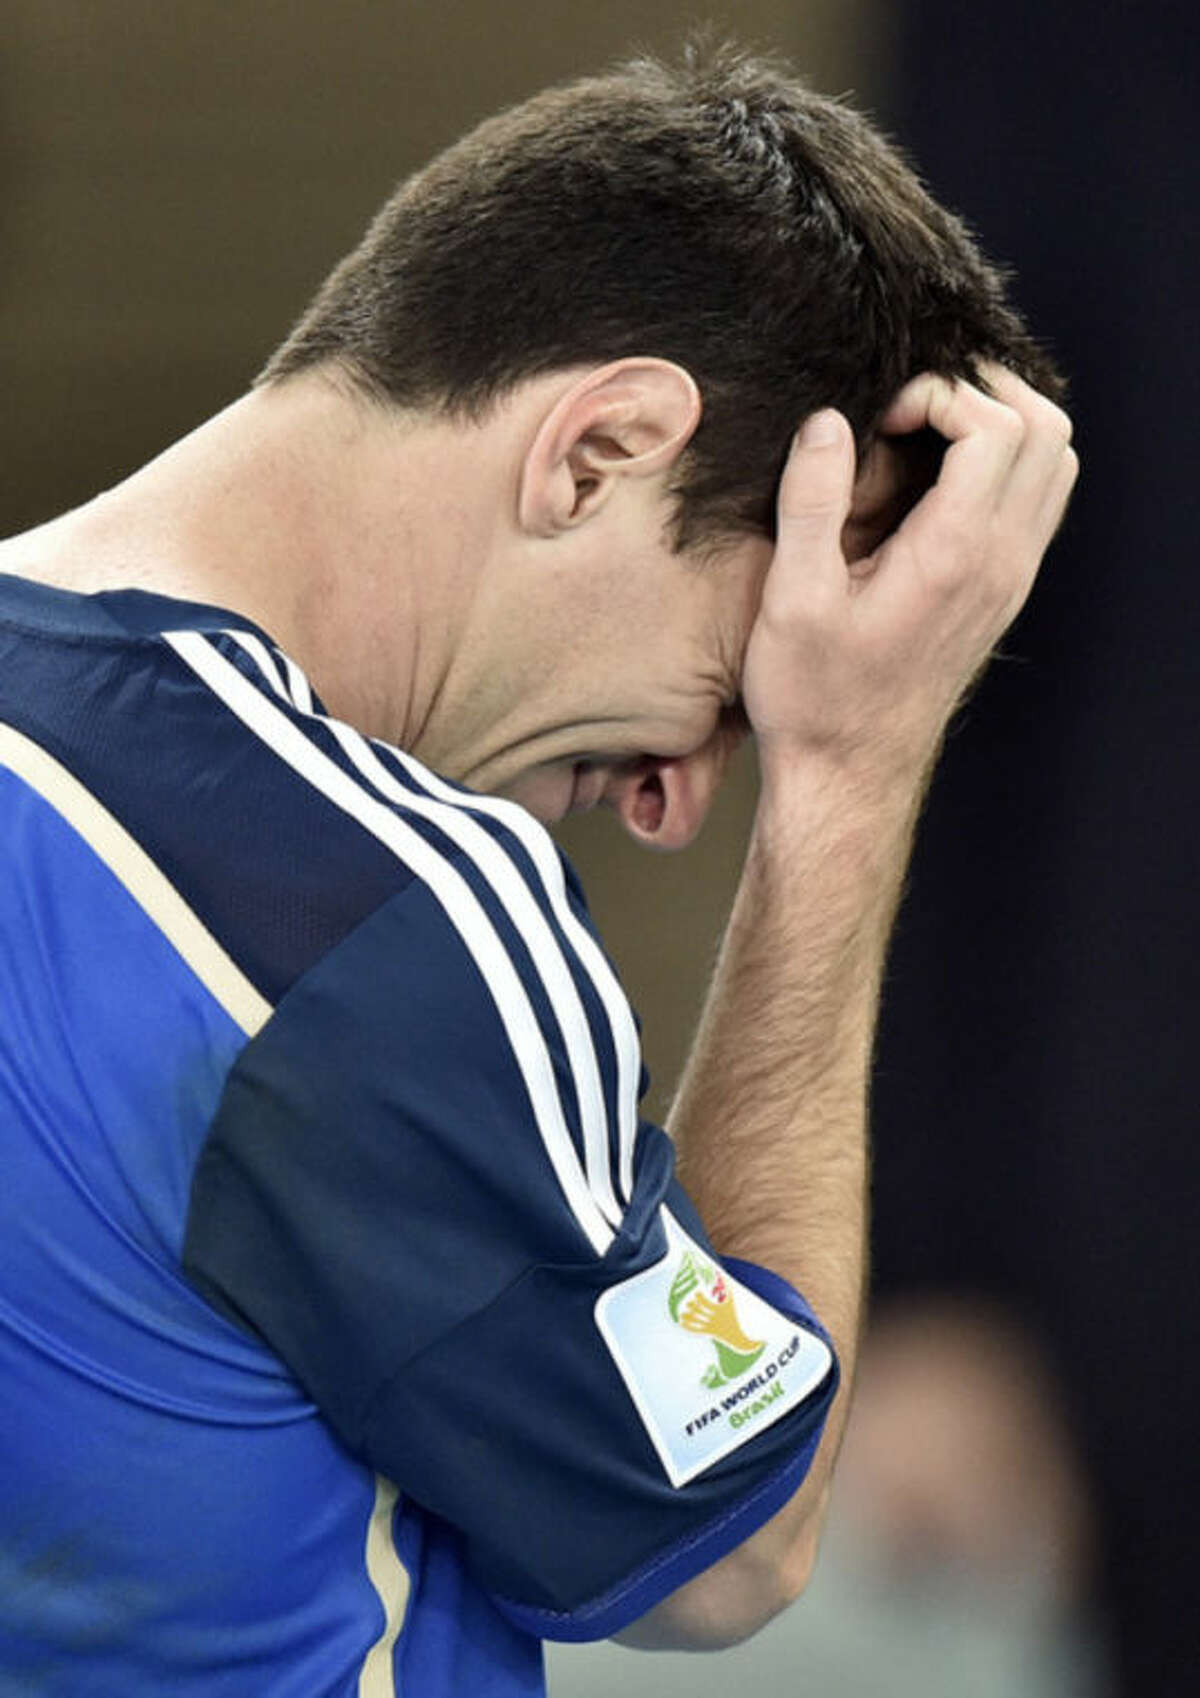 Argentina's Lionel Messi goes to get his runner-up medal after the World Cup final soccer match between Germany and Argentina at the Maracana Stadium in Rio de Janeiro, Brazil, Sunday, July 13, 2014. Germany won the match 1-0 (AP Photo/Martin Meissner)